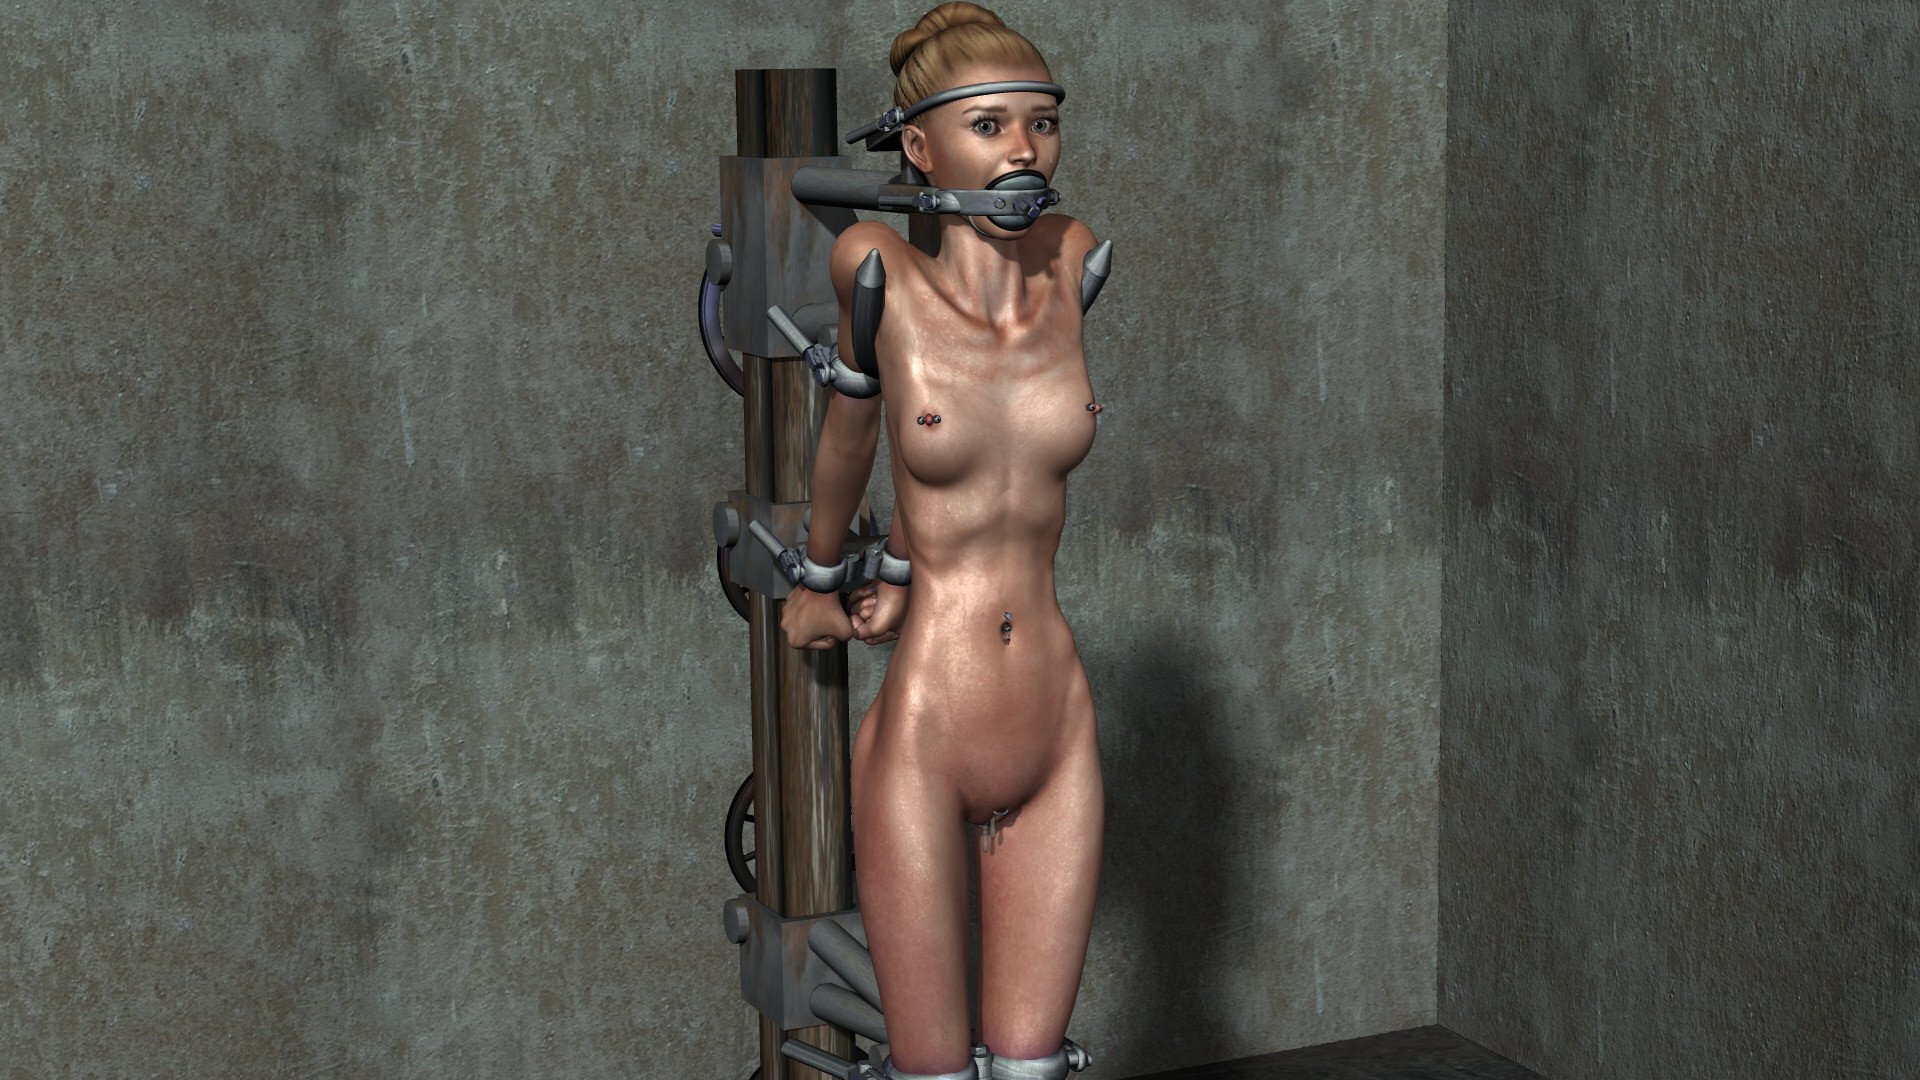 Leaned and chained against wall vibrated